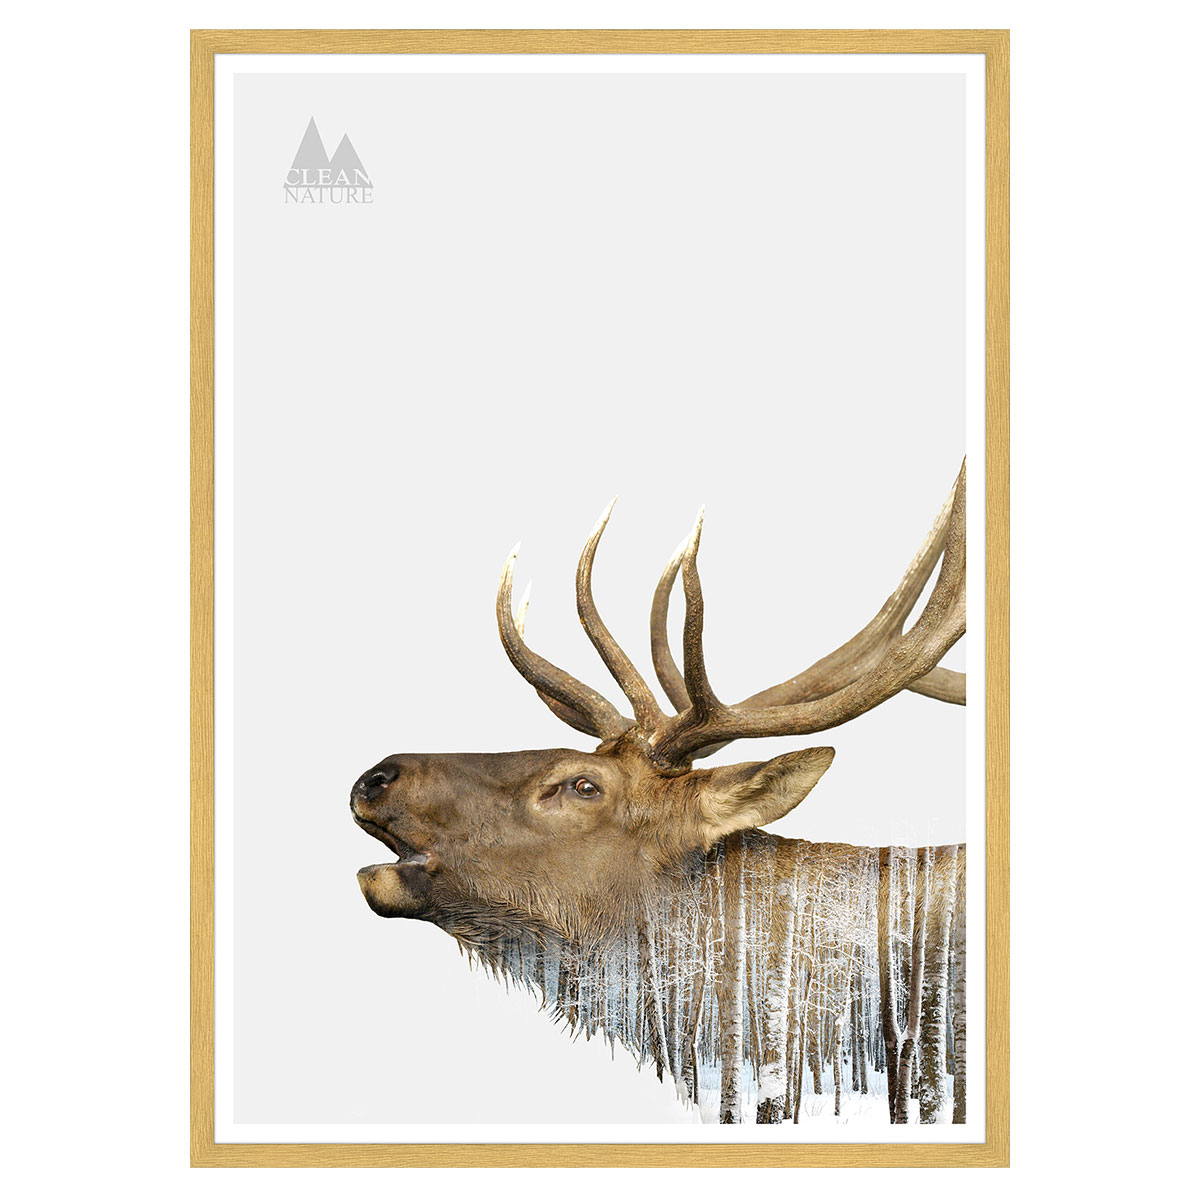 Image of   Deer plakat i ramme - Clean Nature